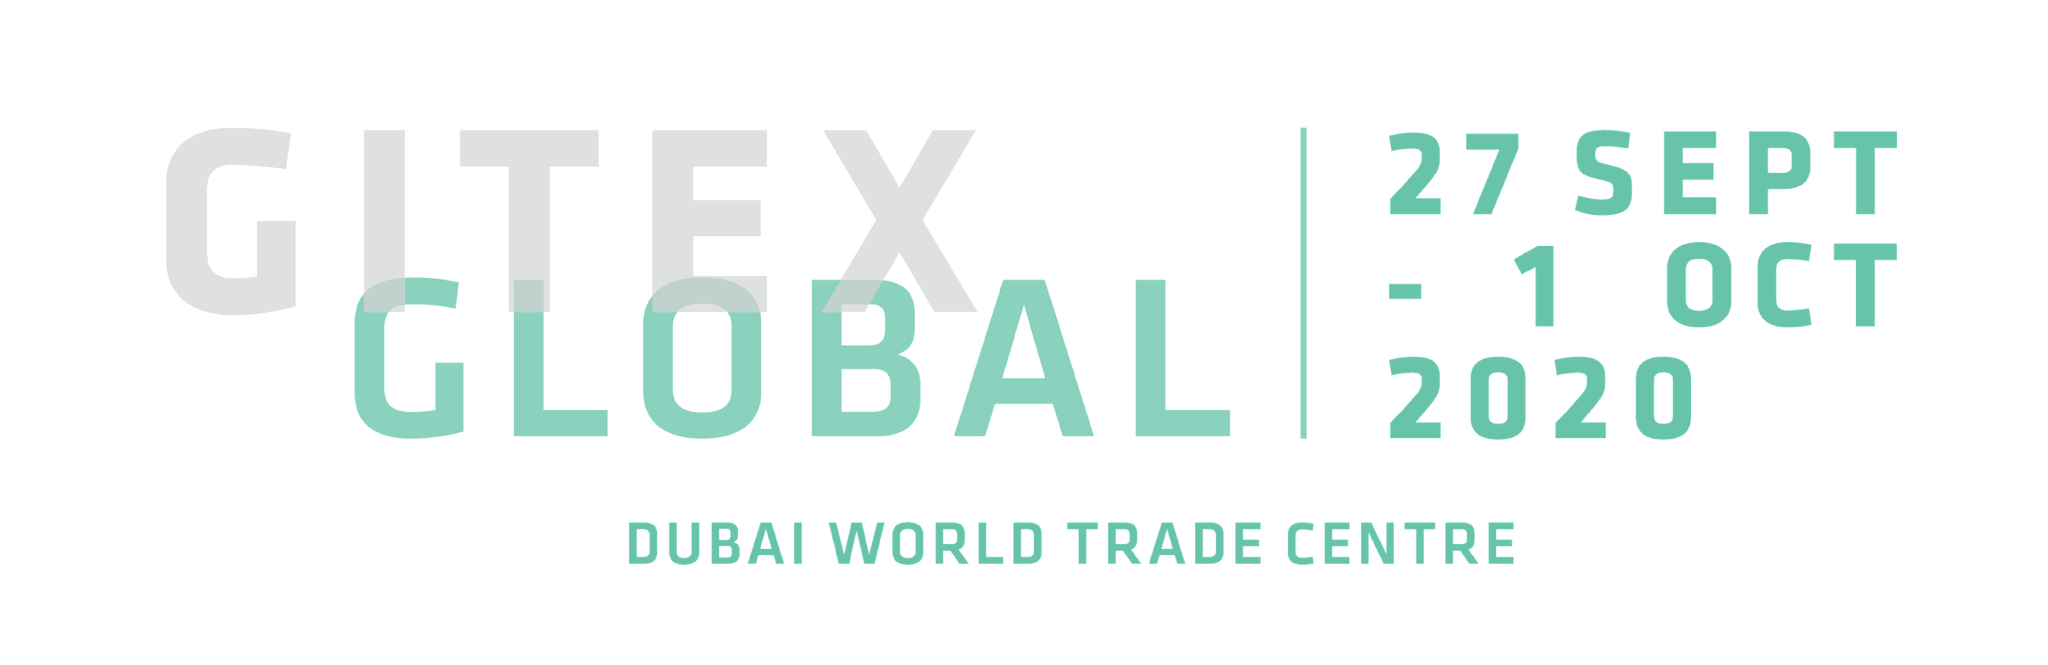 GITEX Global Dubai 2020